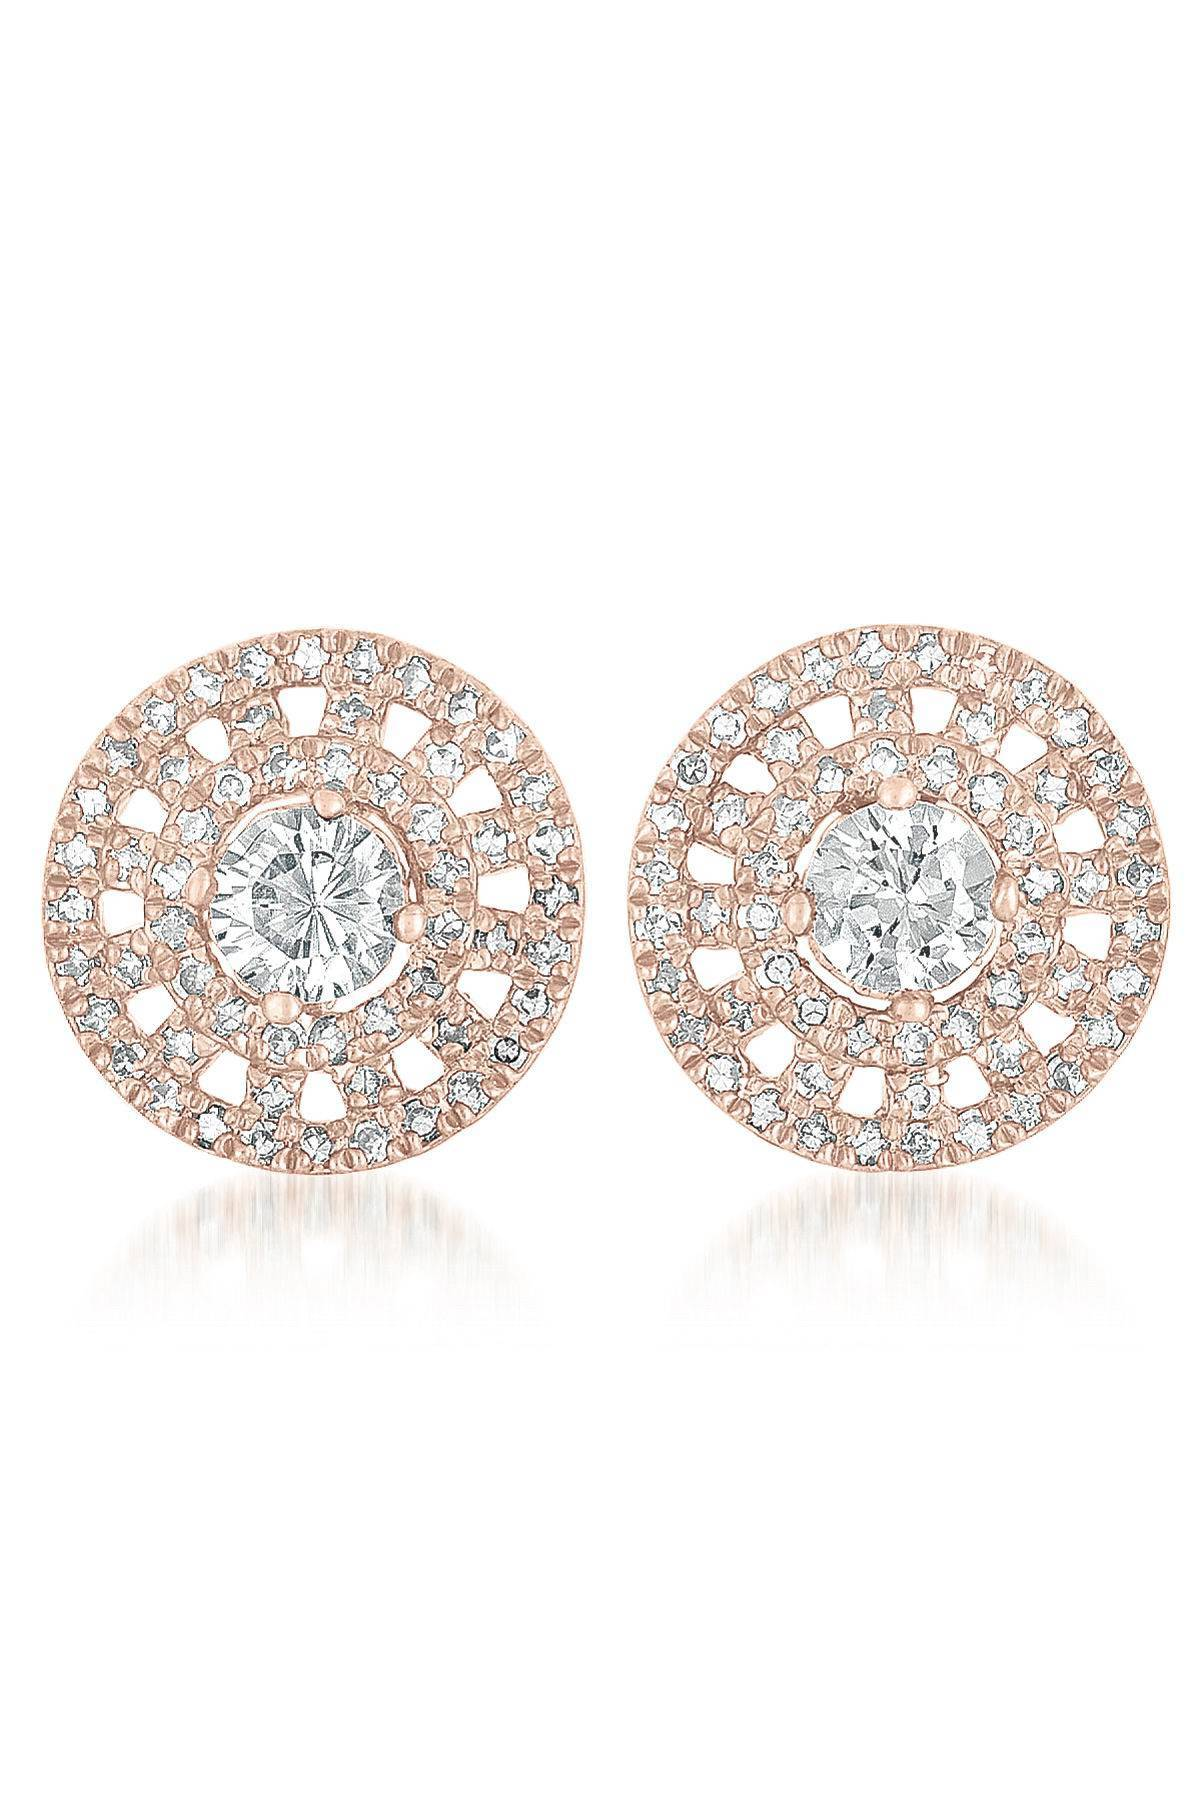 Classic roman style earrings with cz gems 8053